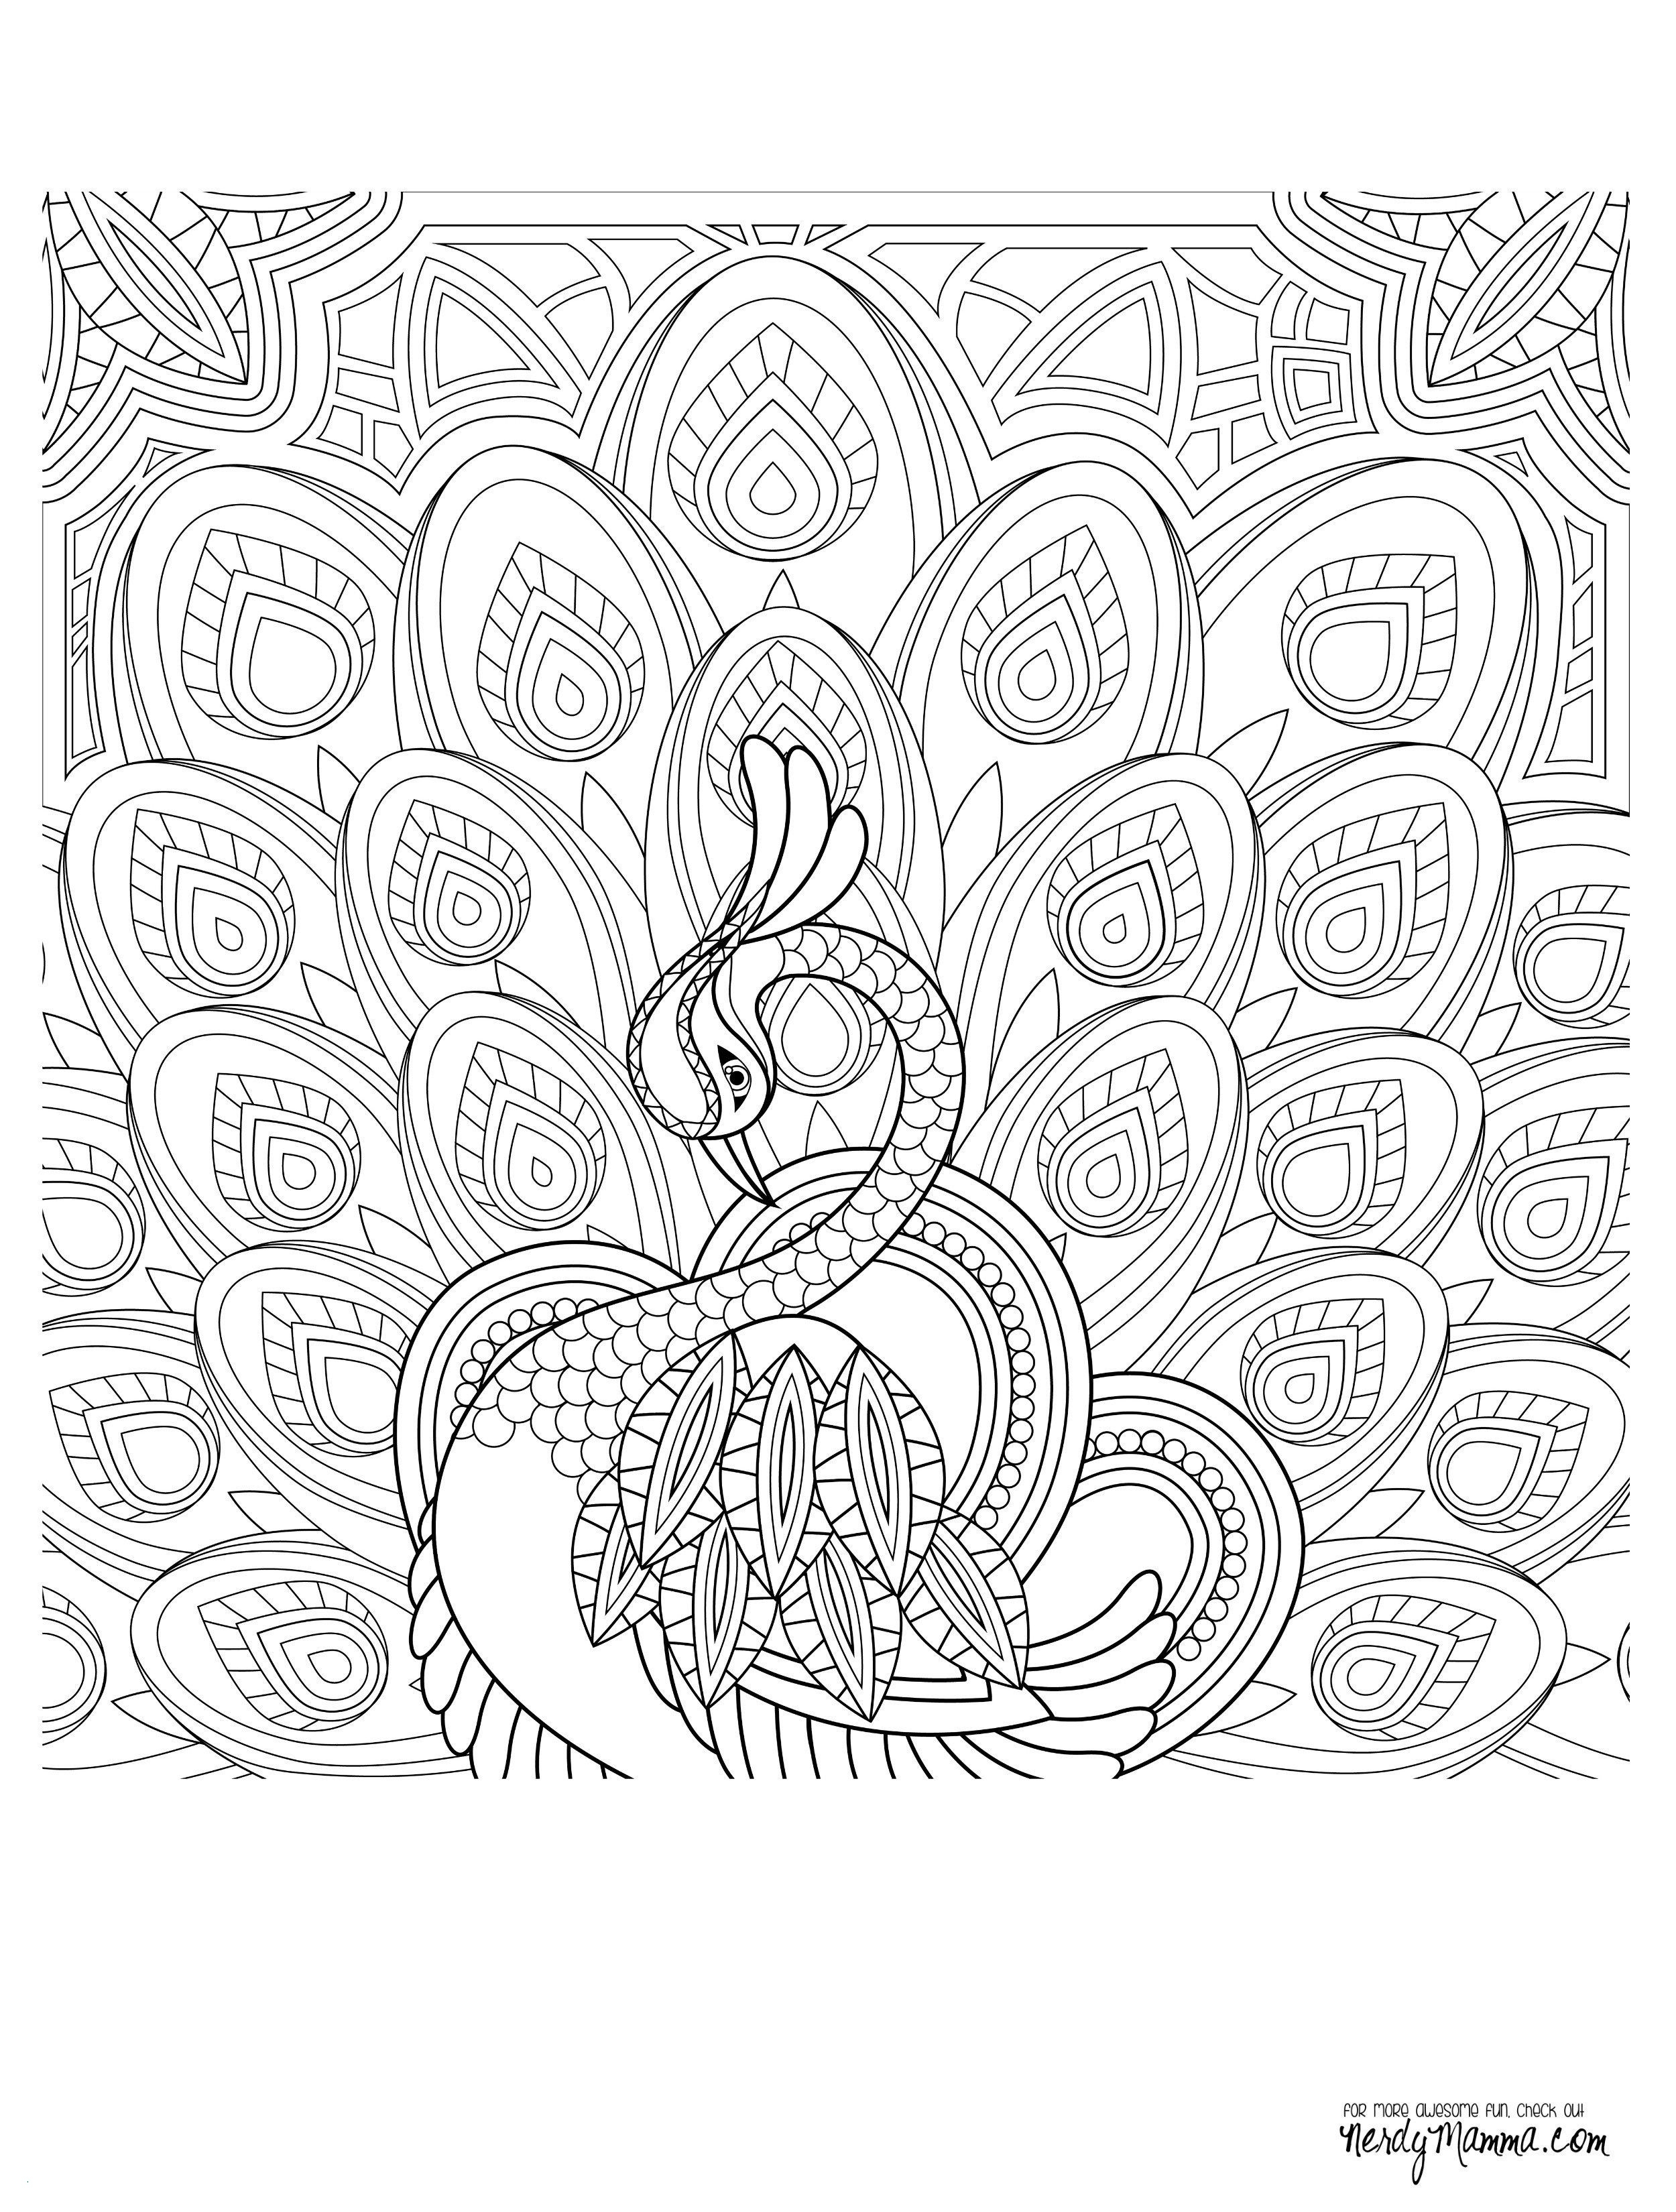 24 Coloring Pages To Color Download Coloring Sheets